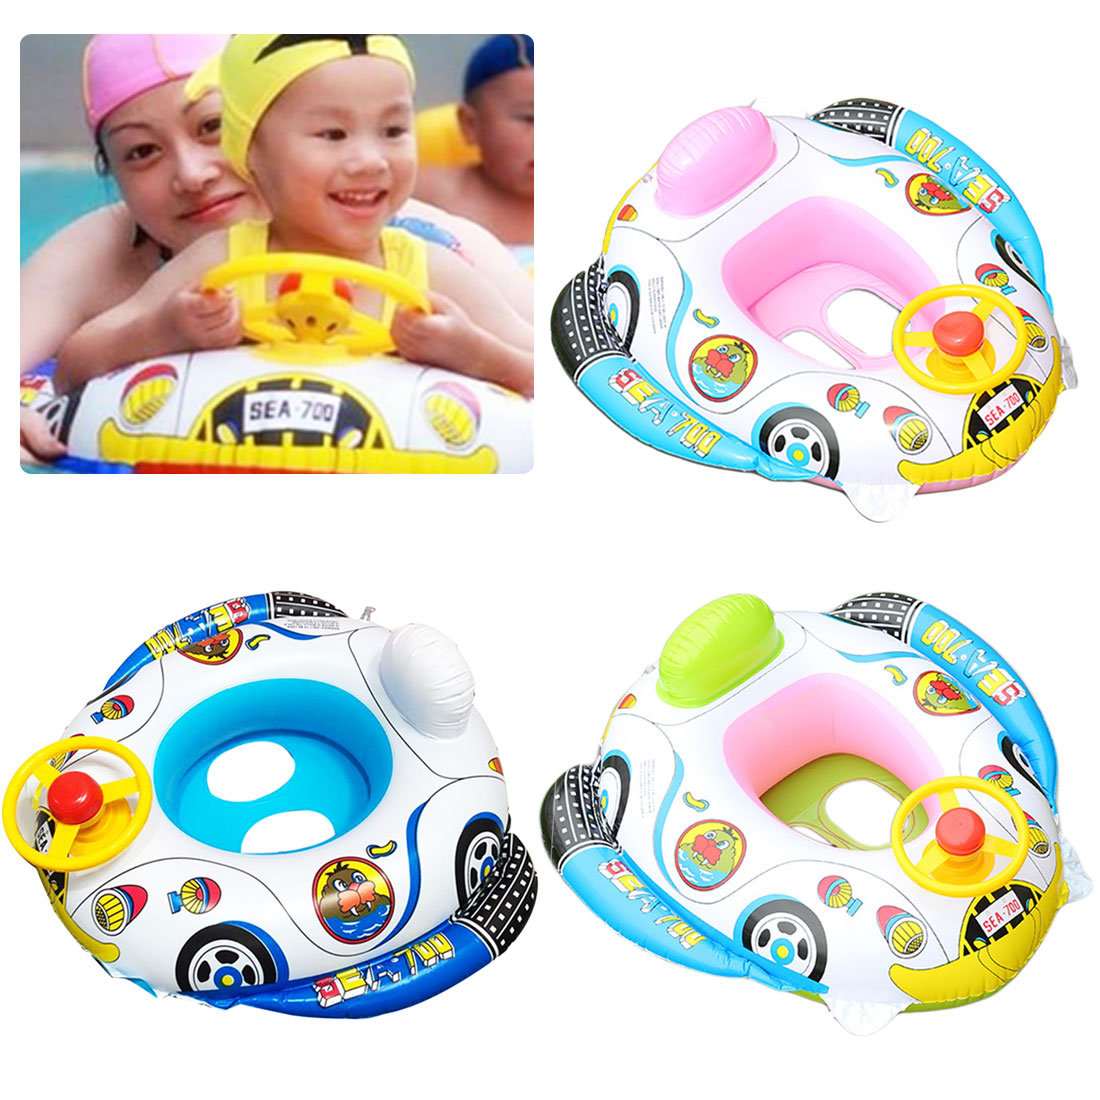 1Pc Child Swimming Ring Baby Pool Seat Toddler Float Aid Trainer Water For Kids Cartoon Designs